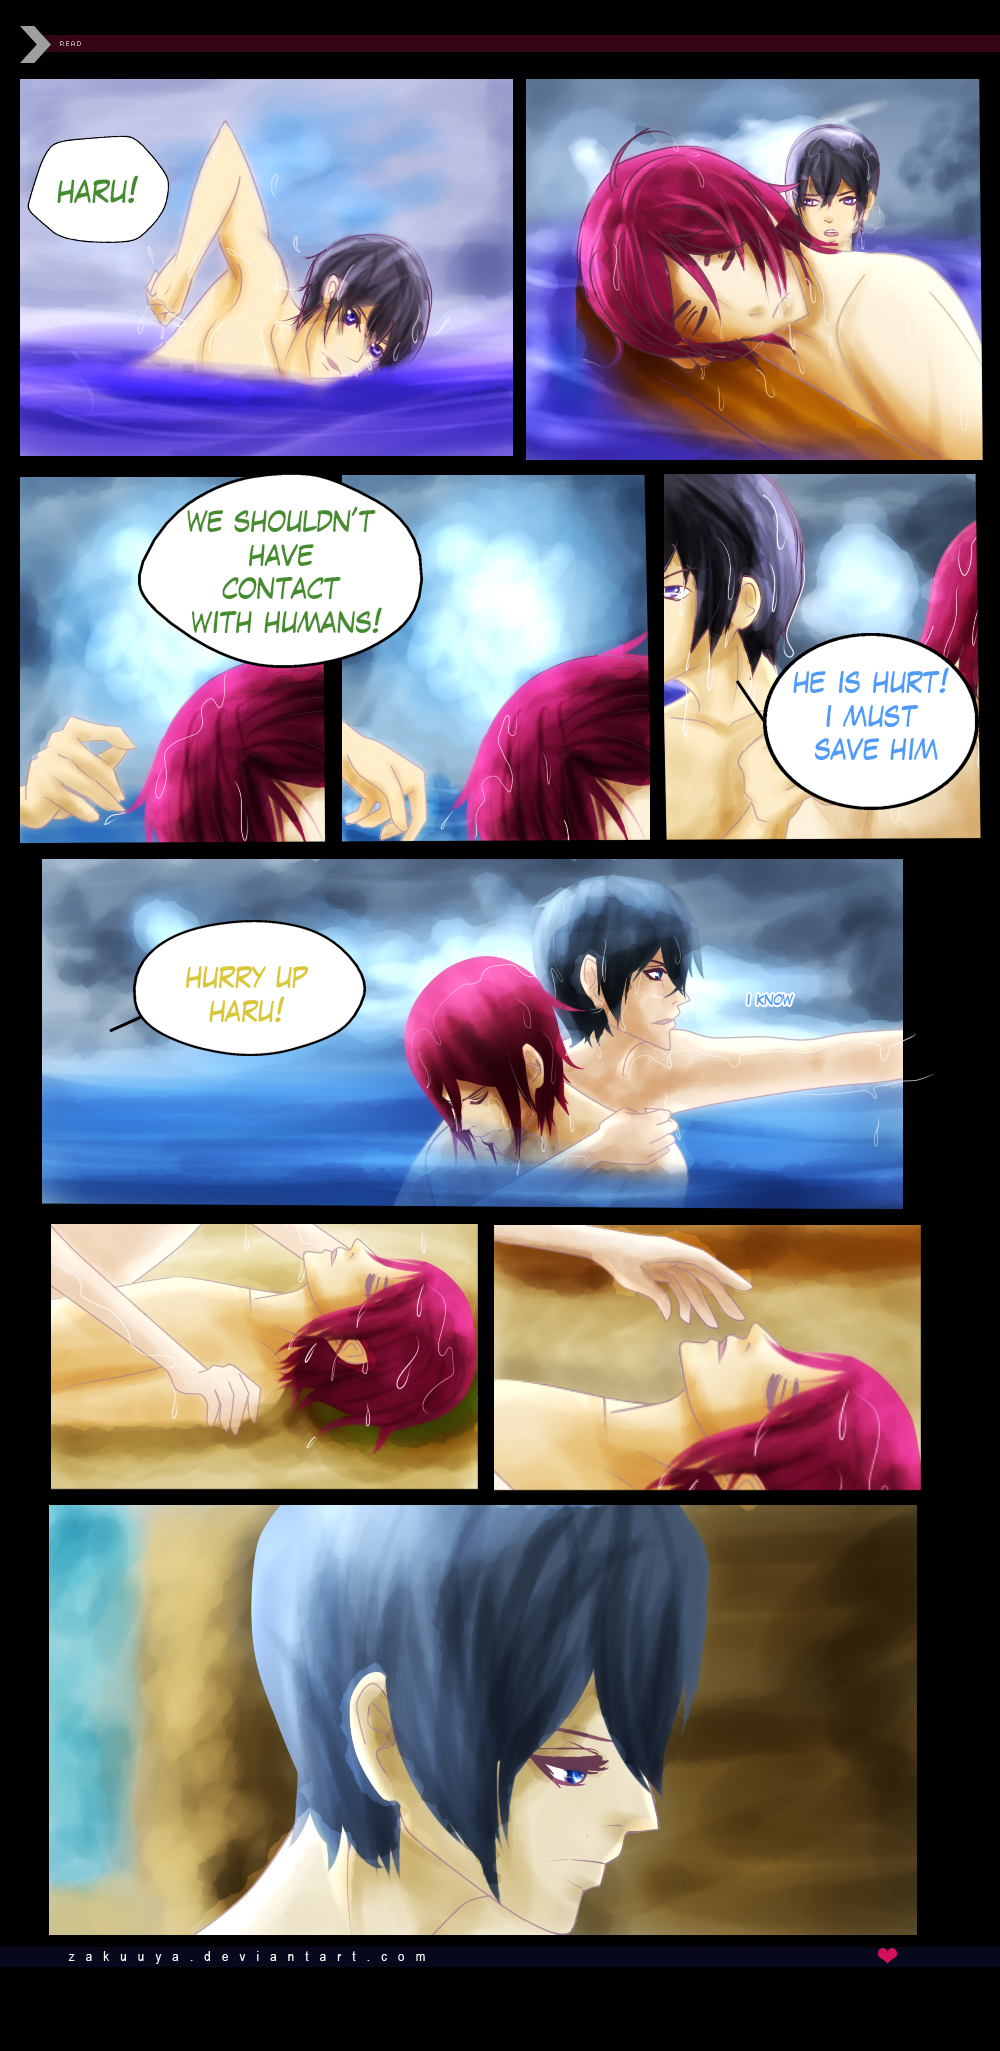 RinHaru: A Mermaid Tale 9 by Zakuuya